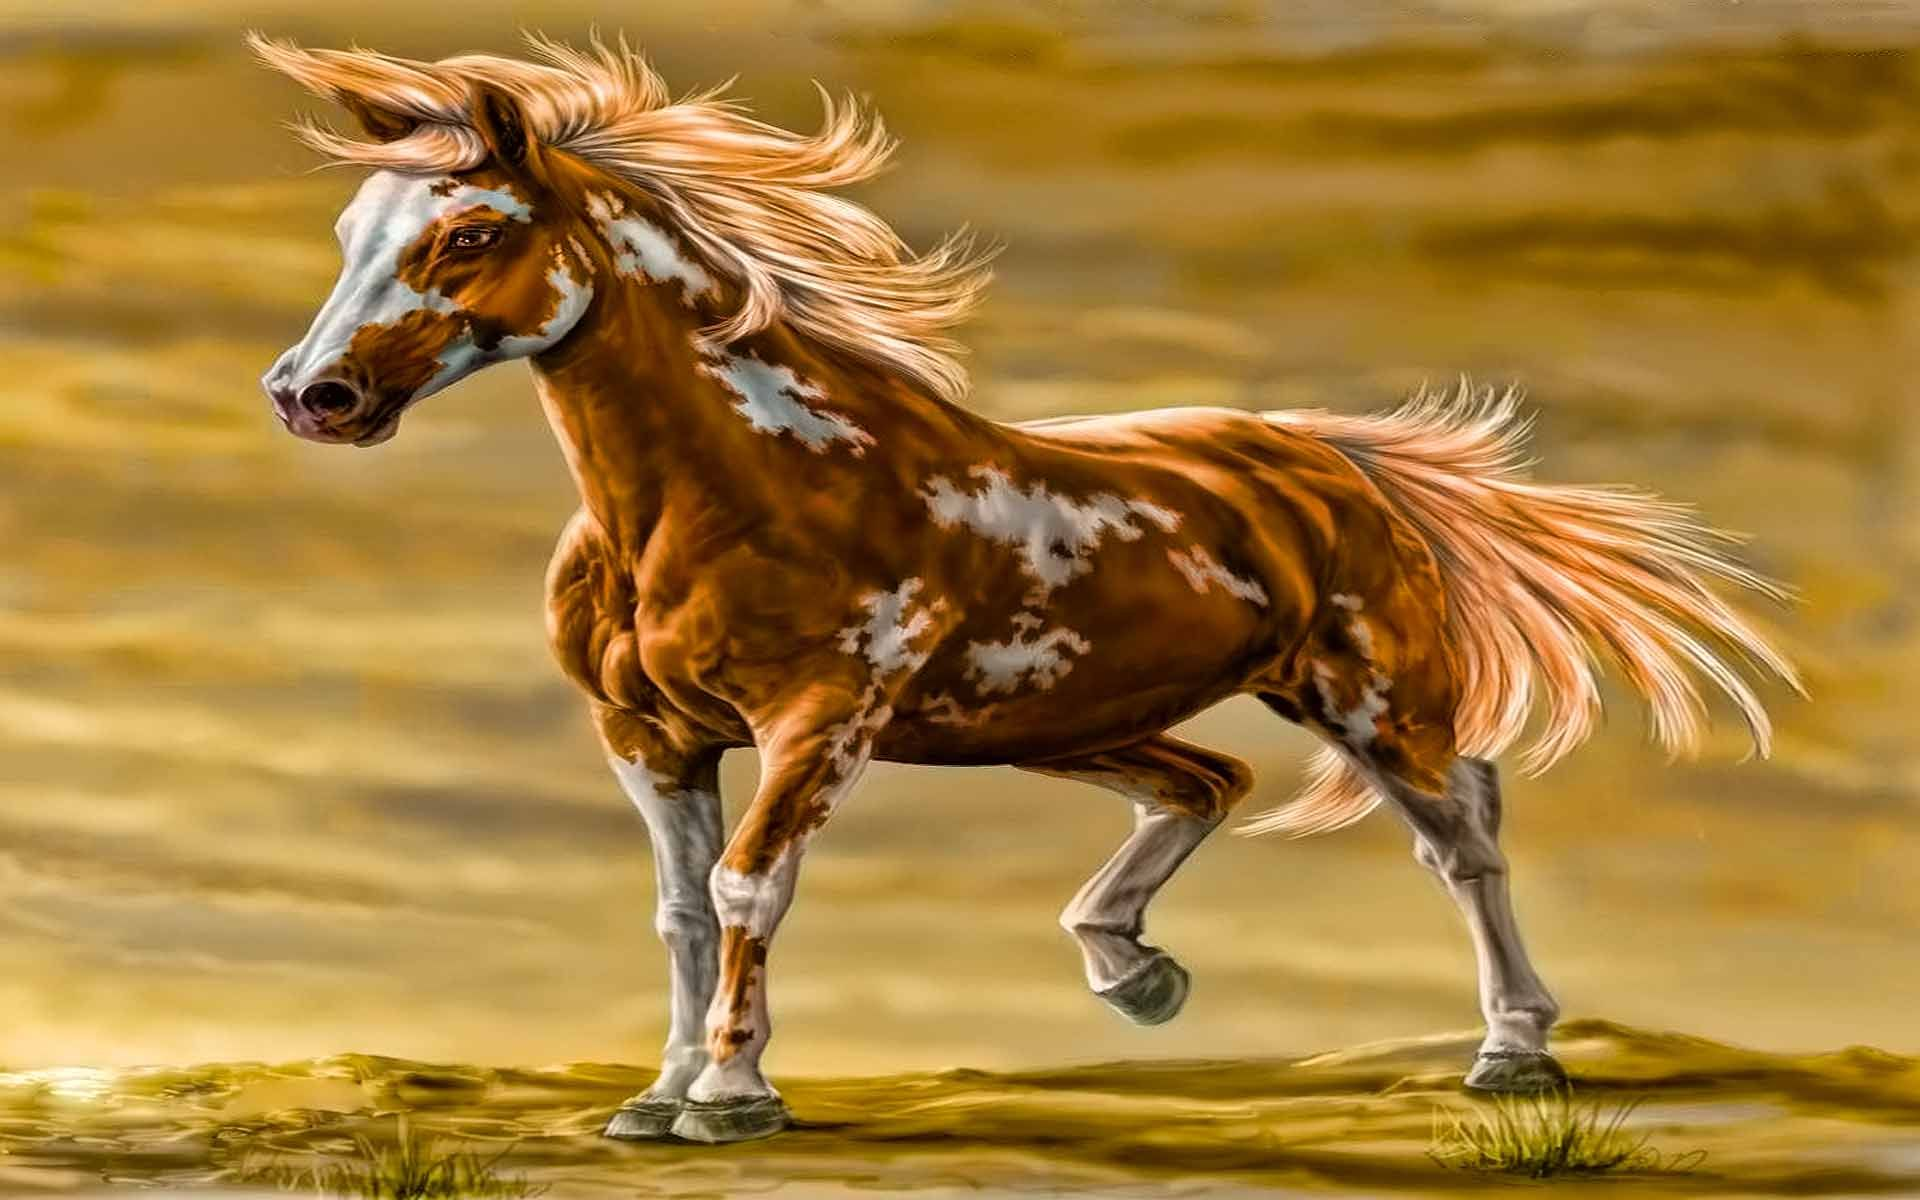 Images > Beautiful Wild Paint Horses Home On The Range